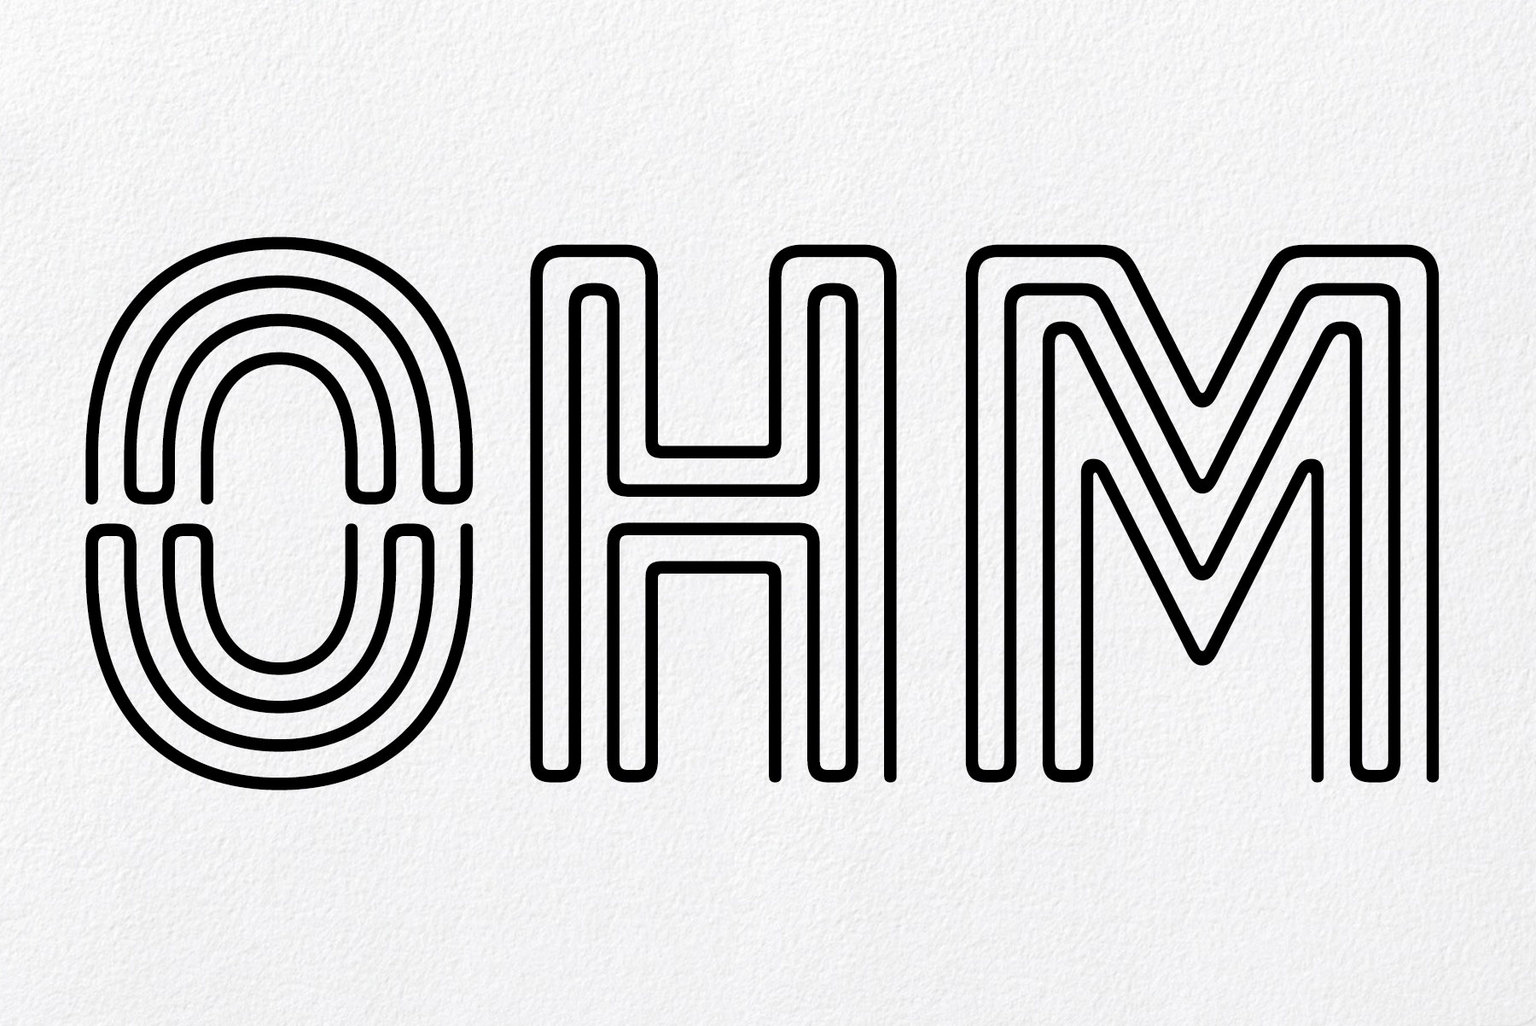 Vllg typesupply news ohm